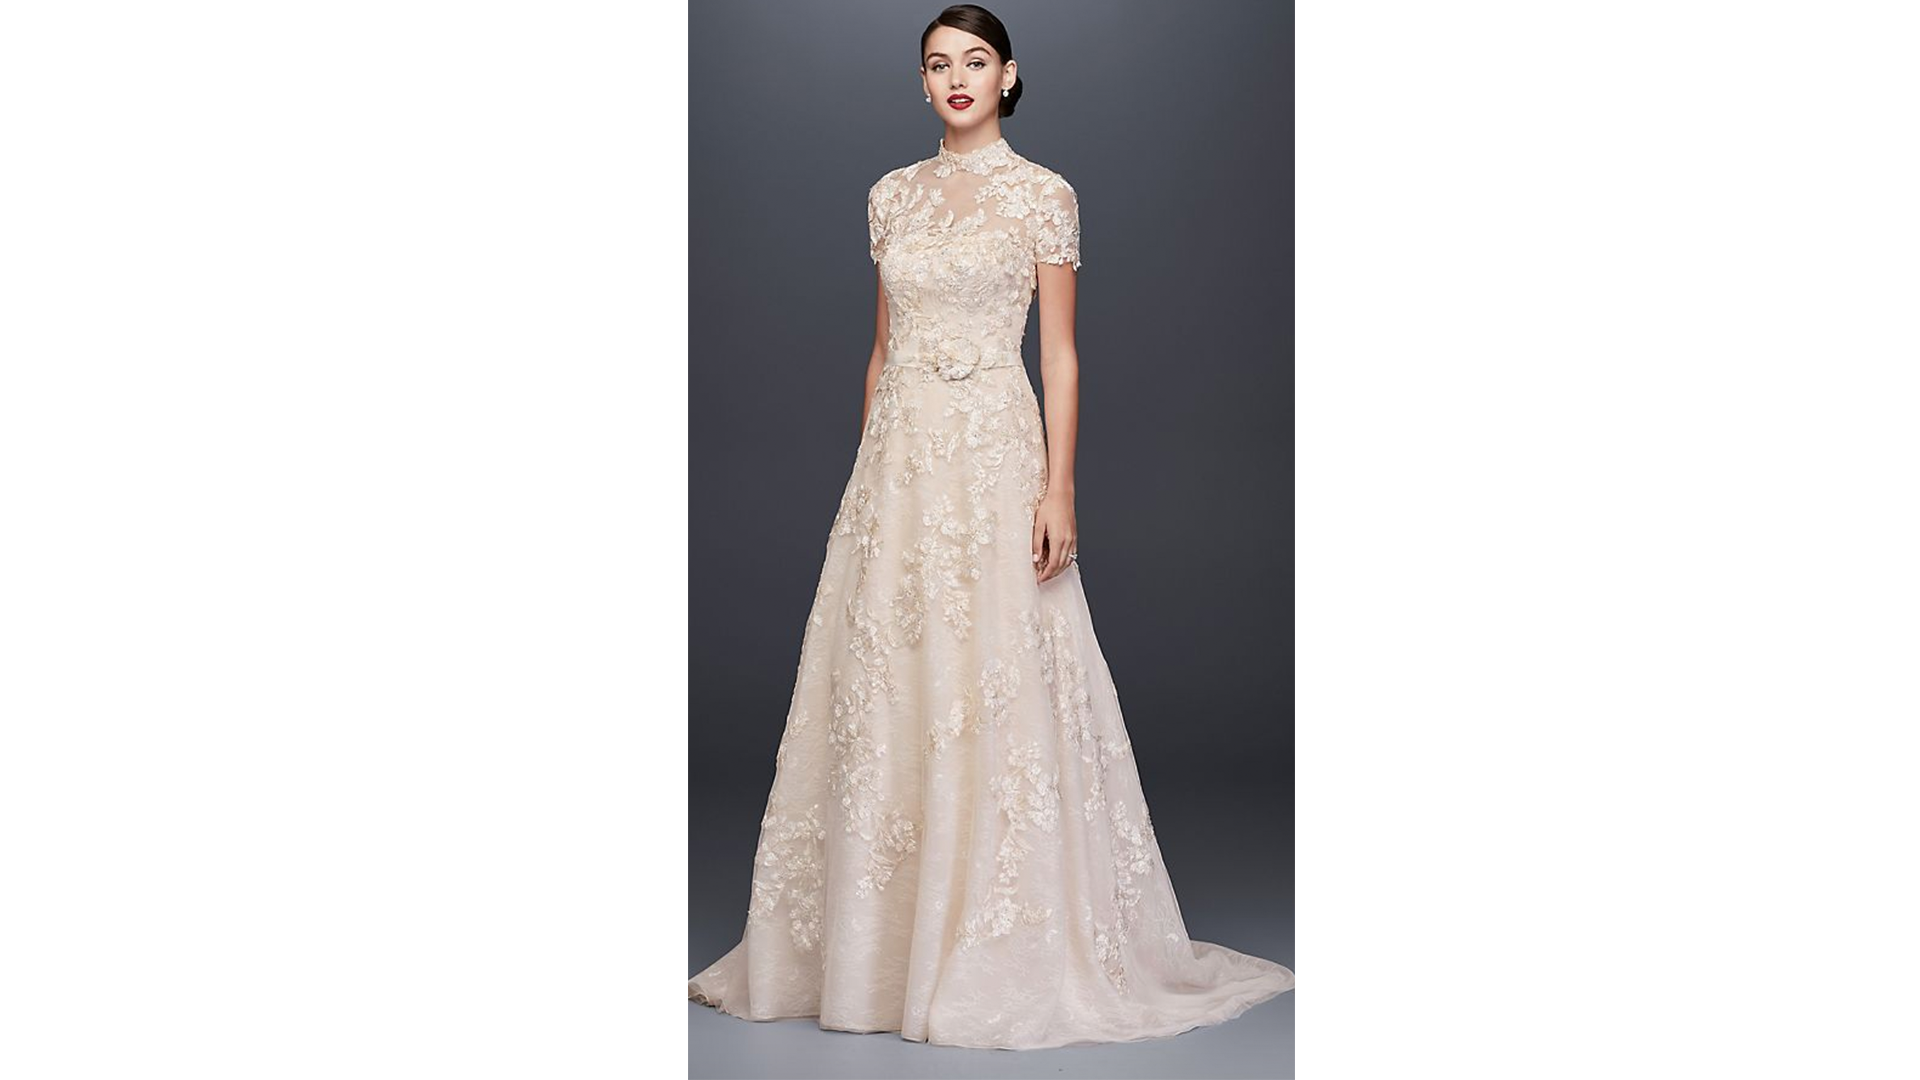 RX_1903 A-Line Wedding Dresses_Lace Appliqued A-Line Wedding Dress and Topper